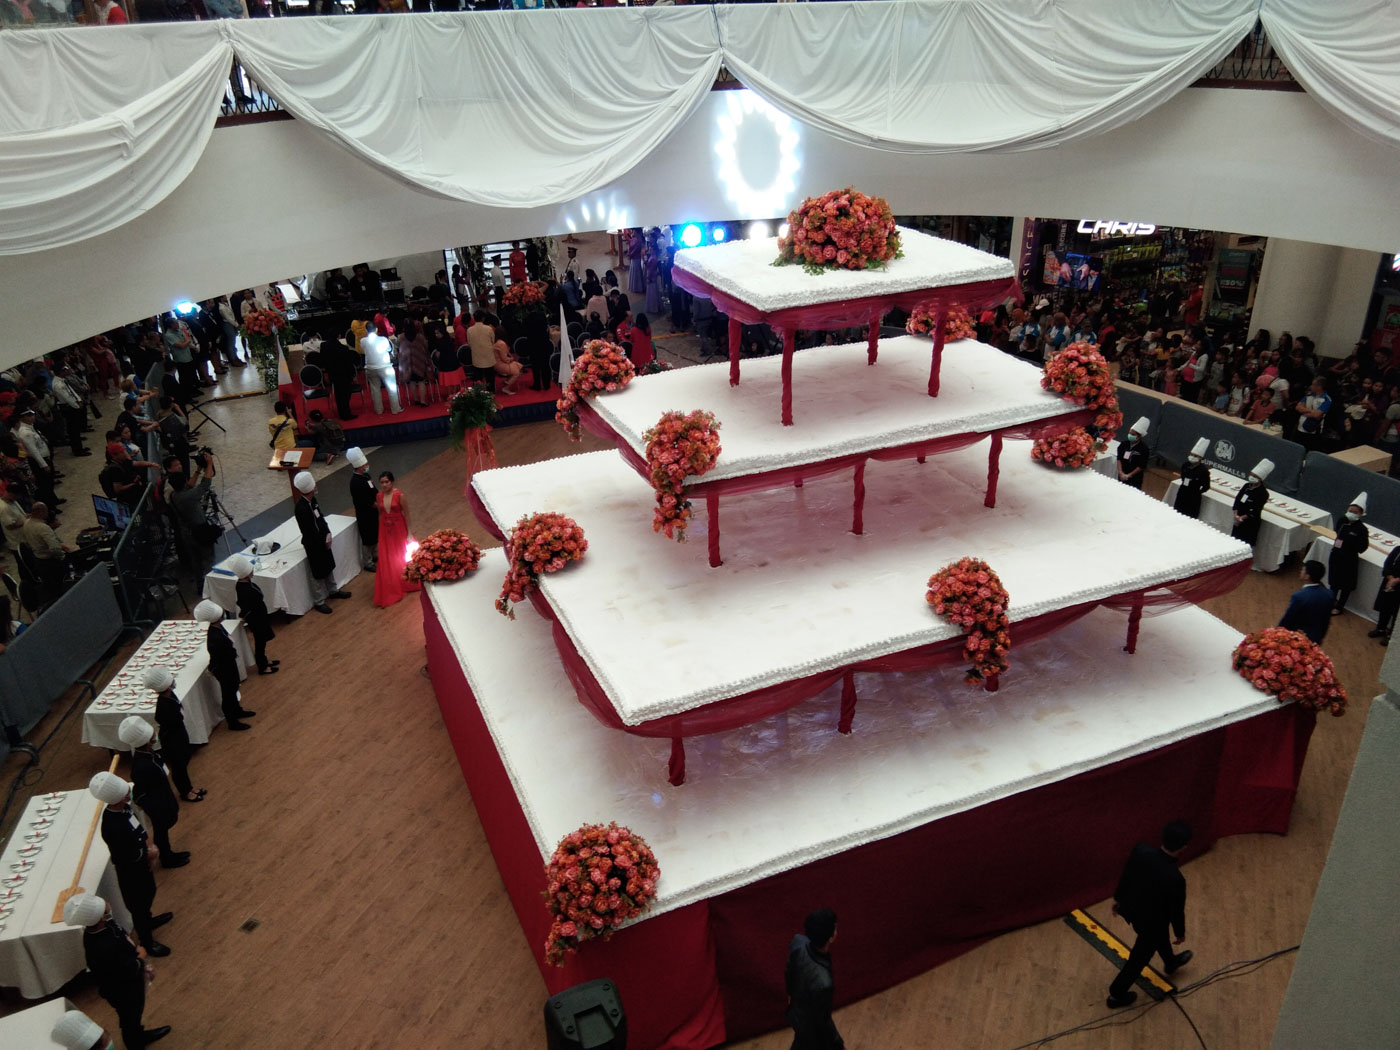 24-FOOT CAKE. The cake weighs 13 to 14 tons, say organizers.